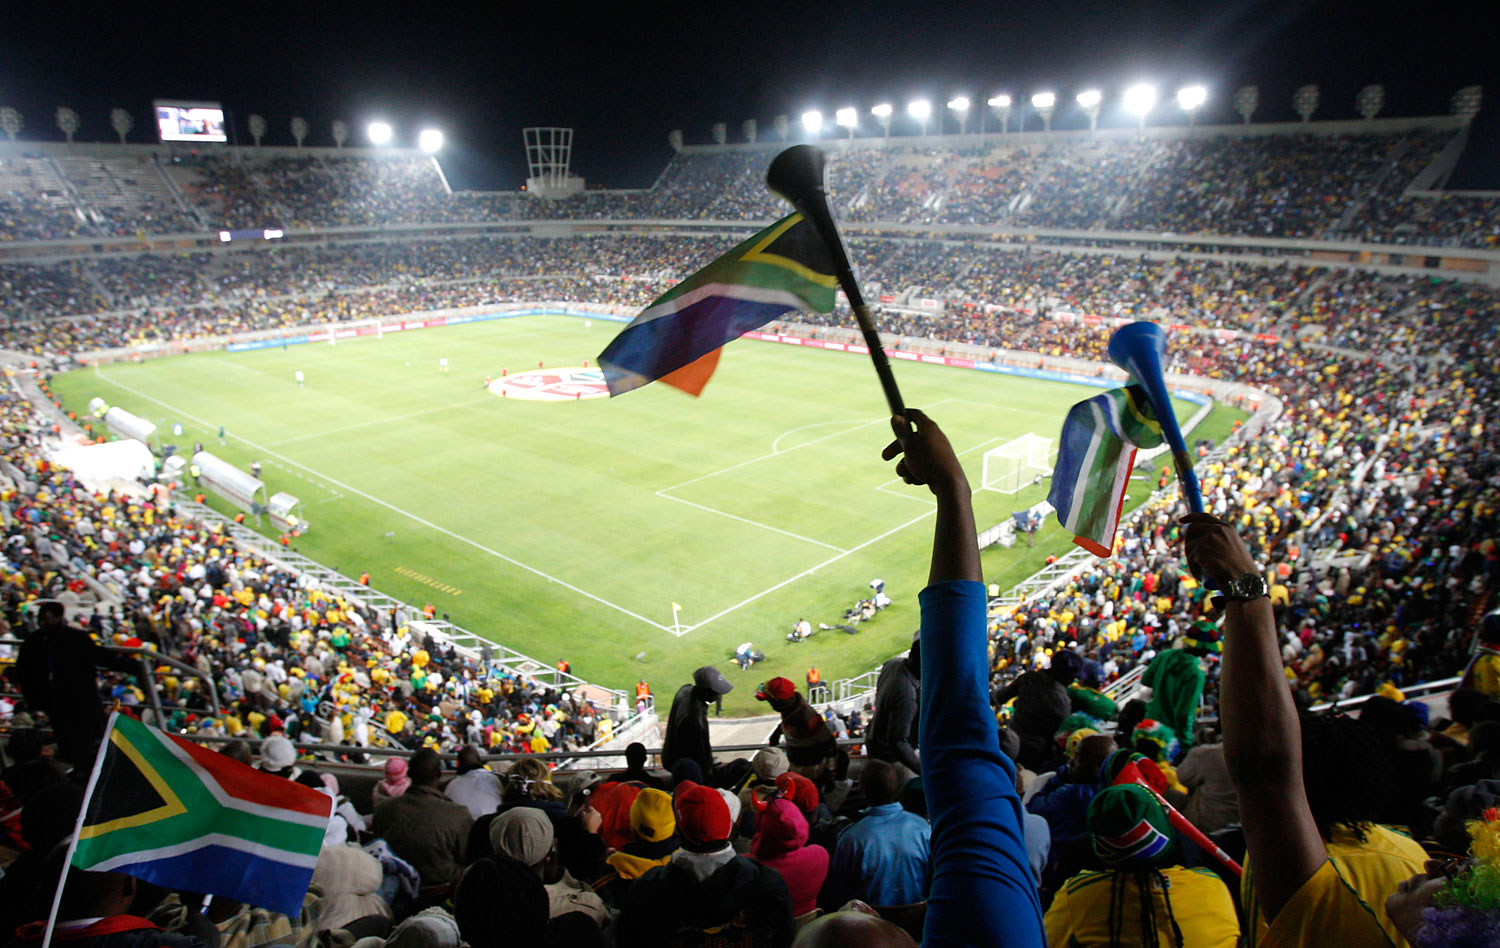 Spectators attend an exhibition soccer match between South Africa and Guatemala at the Peter Mokaba Stadium in Polokwane, South Africa, May 31, 2010.